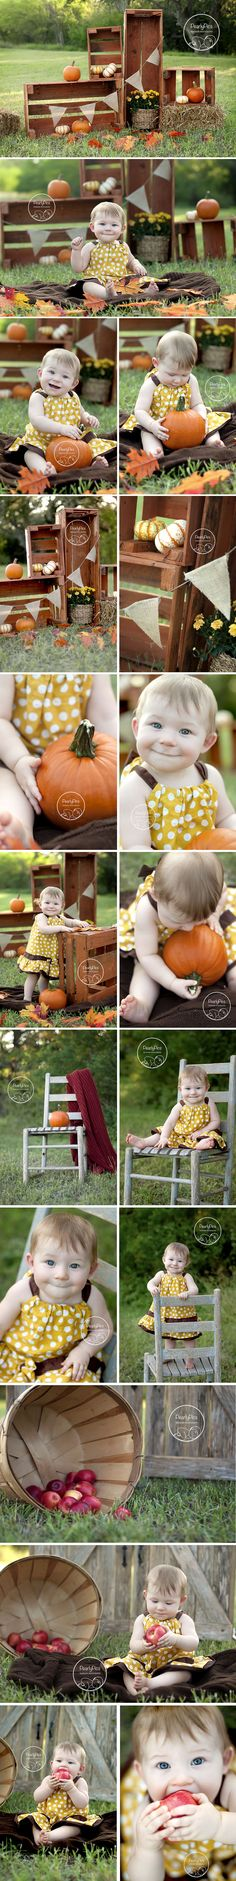 Fall mini session - this is adorable